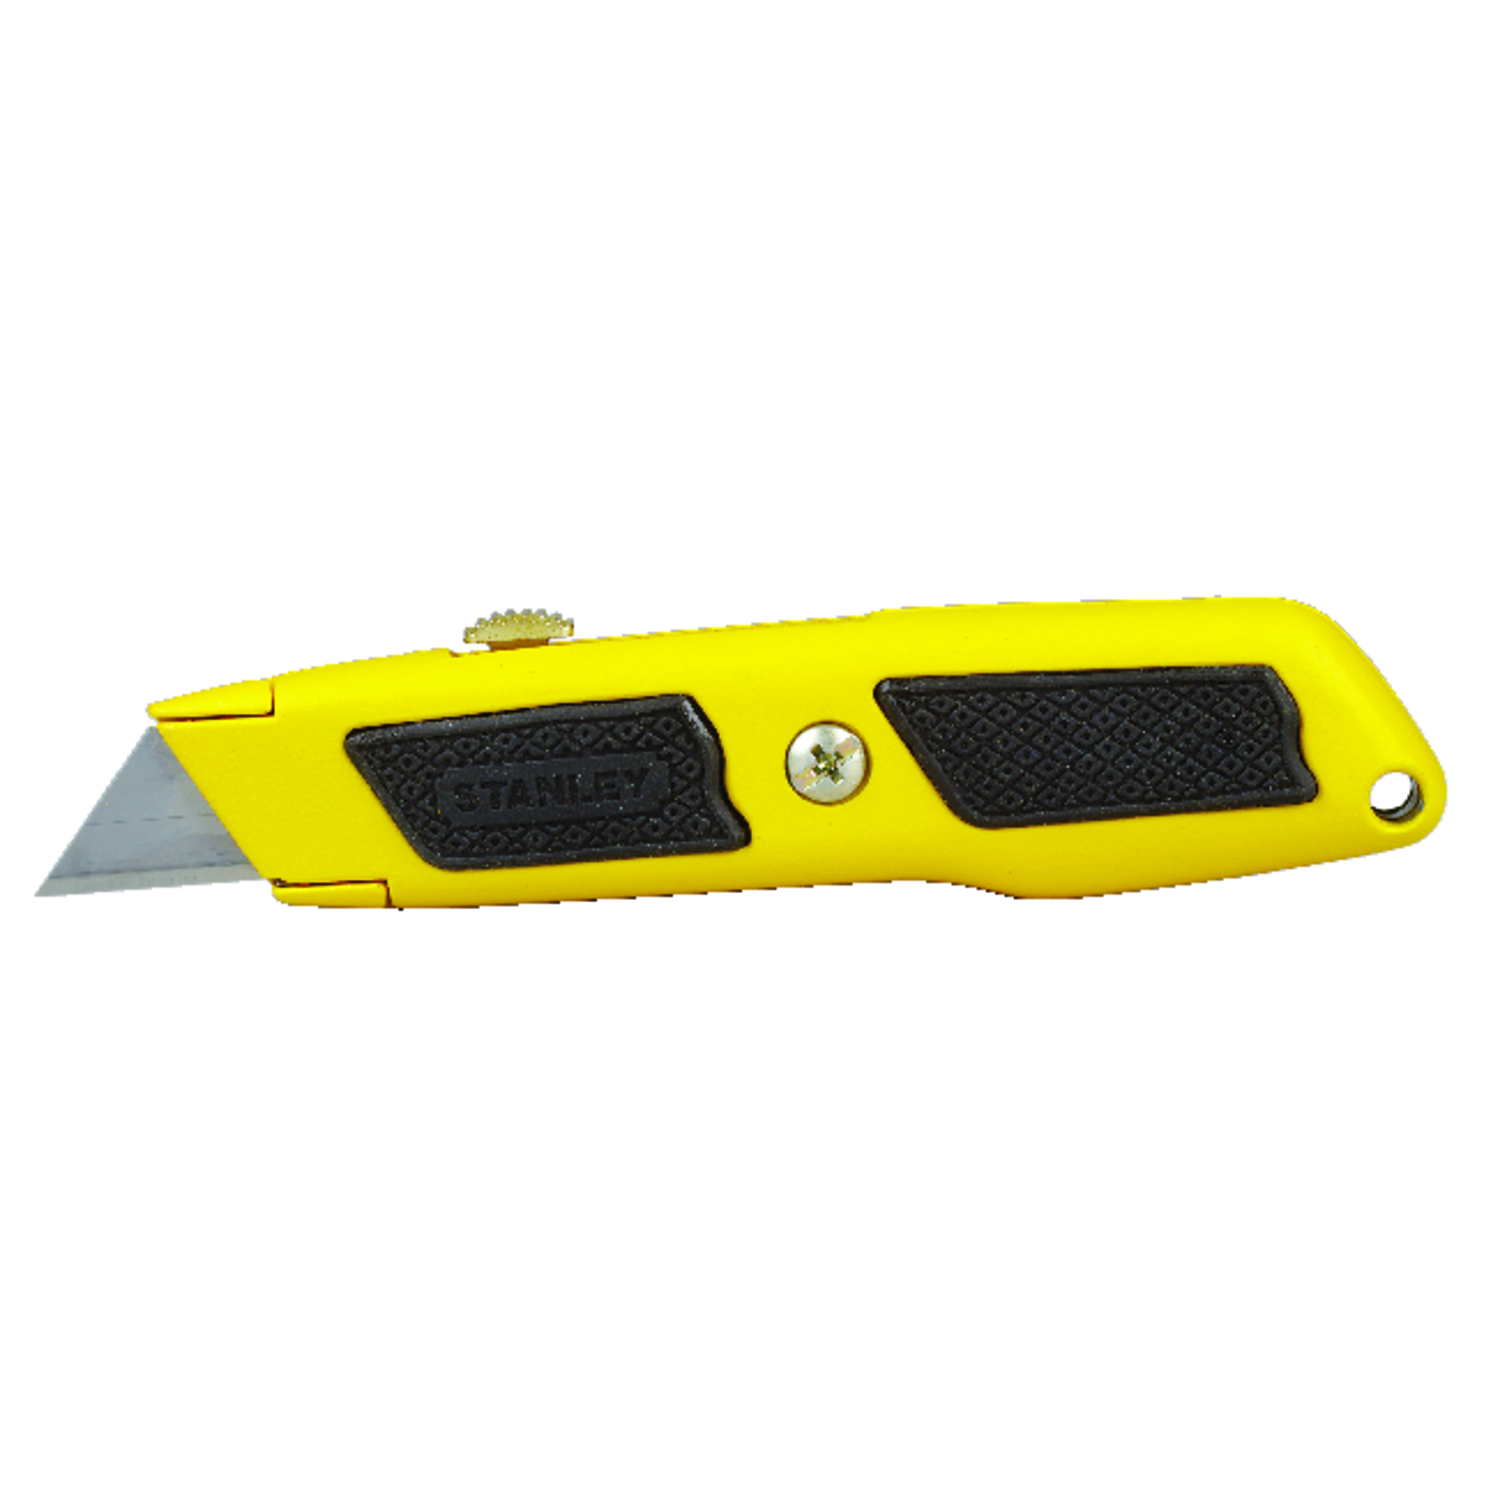 Stanley  Dynagrip  6 in. Retractable  Utility Knife  Yellow  1 pc.